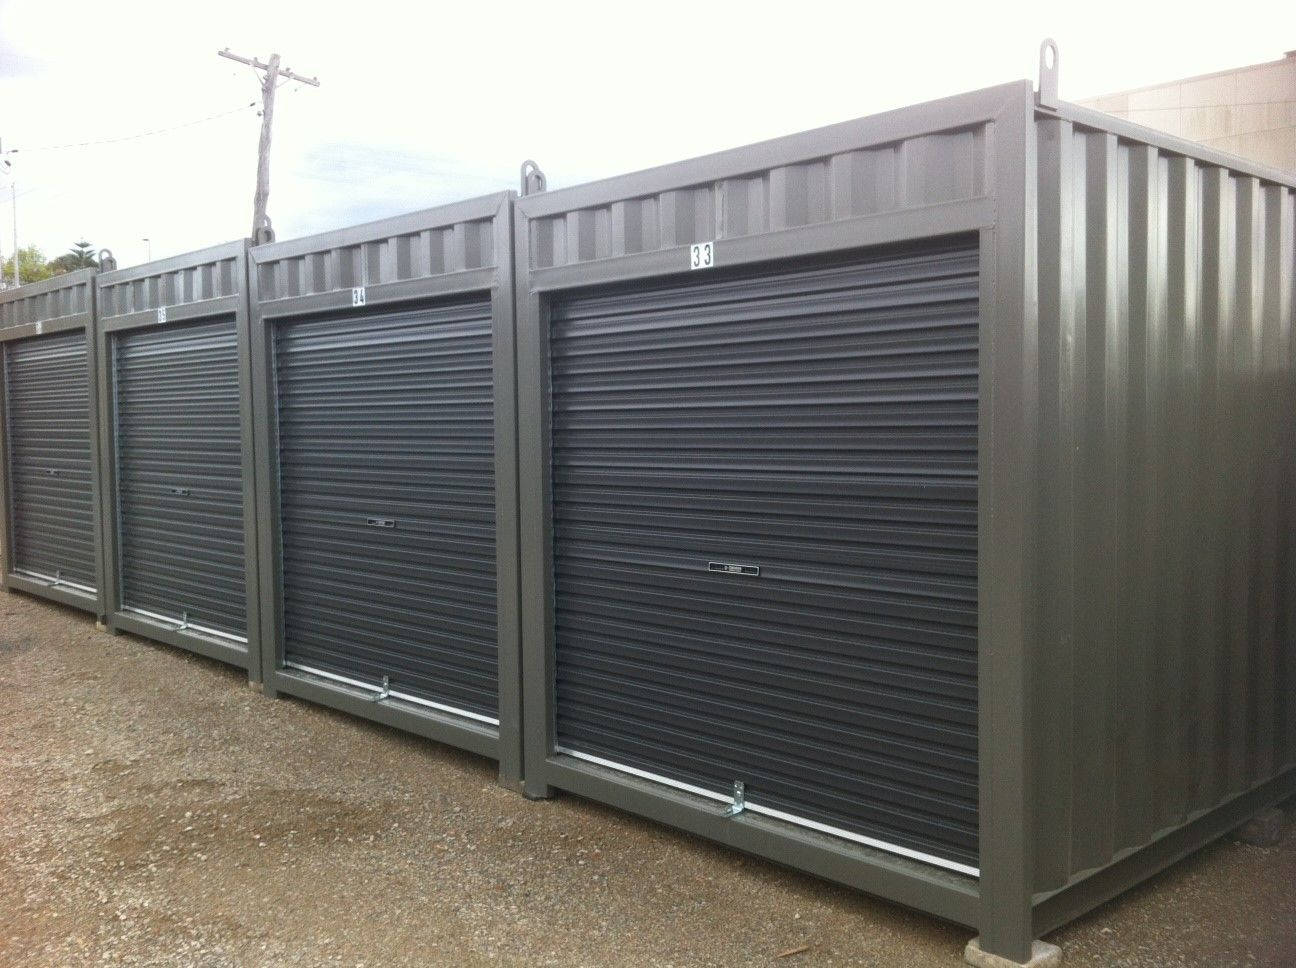 Modifications Containerspace Shipping Container Shipping Container Storage Self Storage